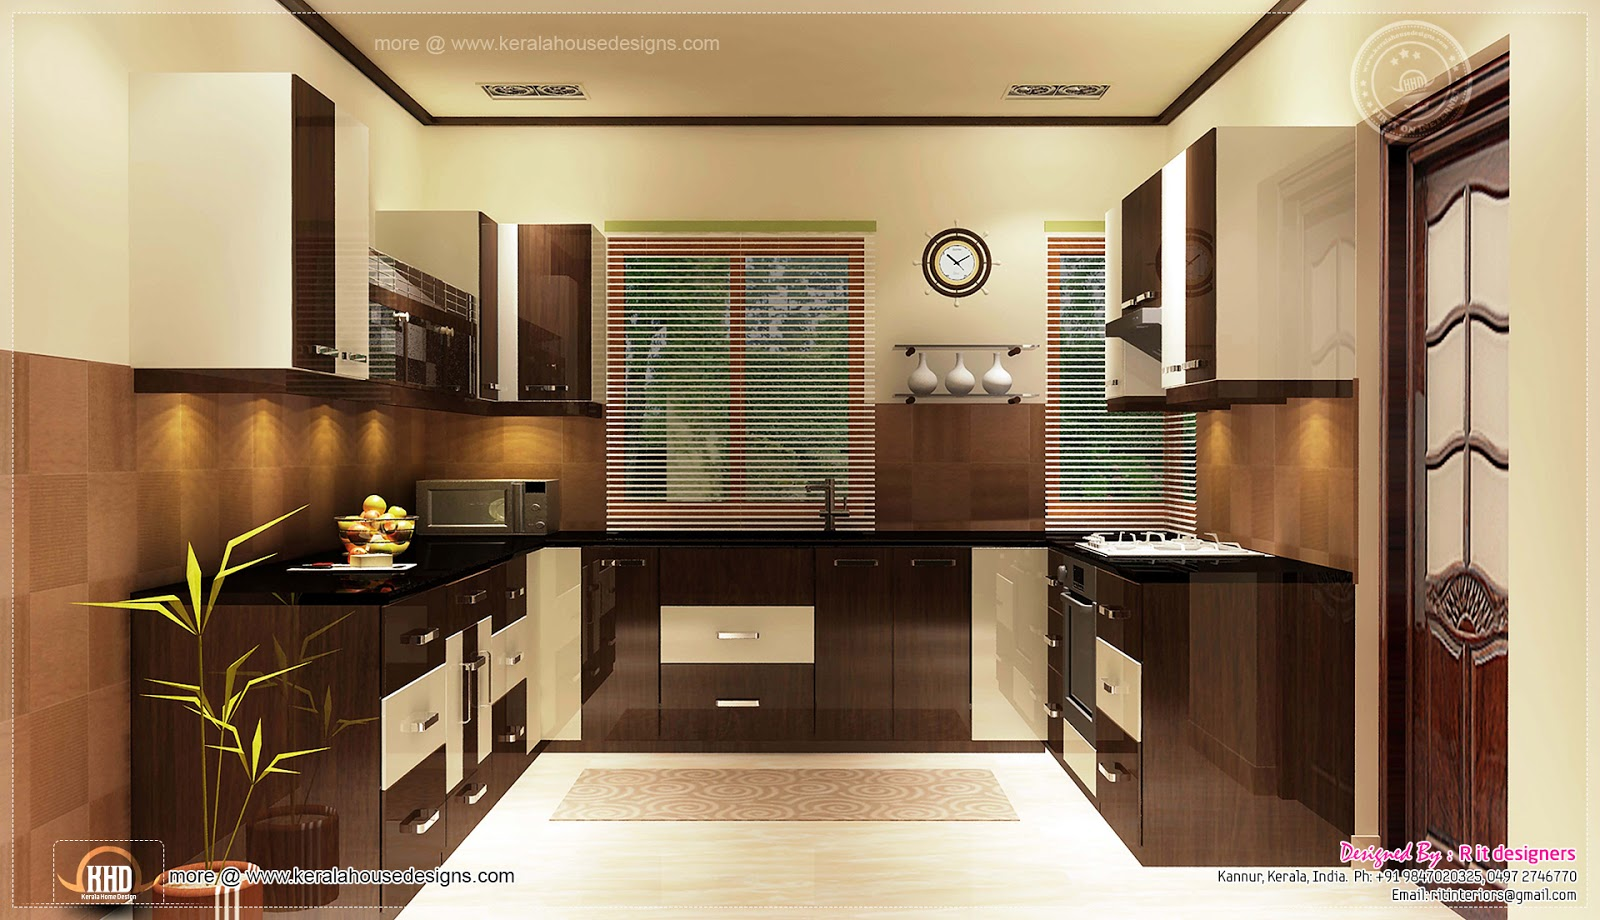 Home interior designs by rit designers kerala home for Interior house design burlington